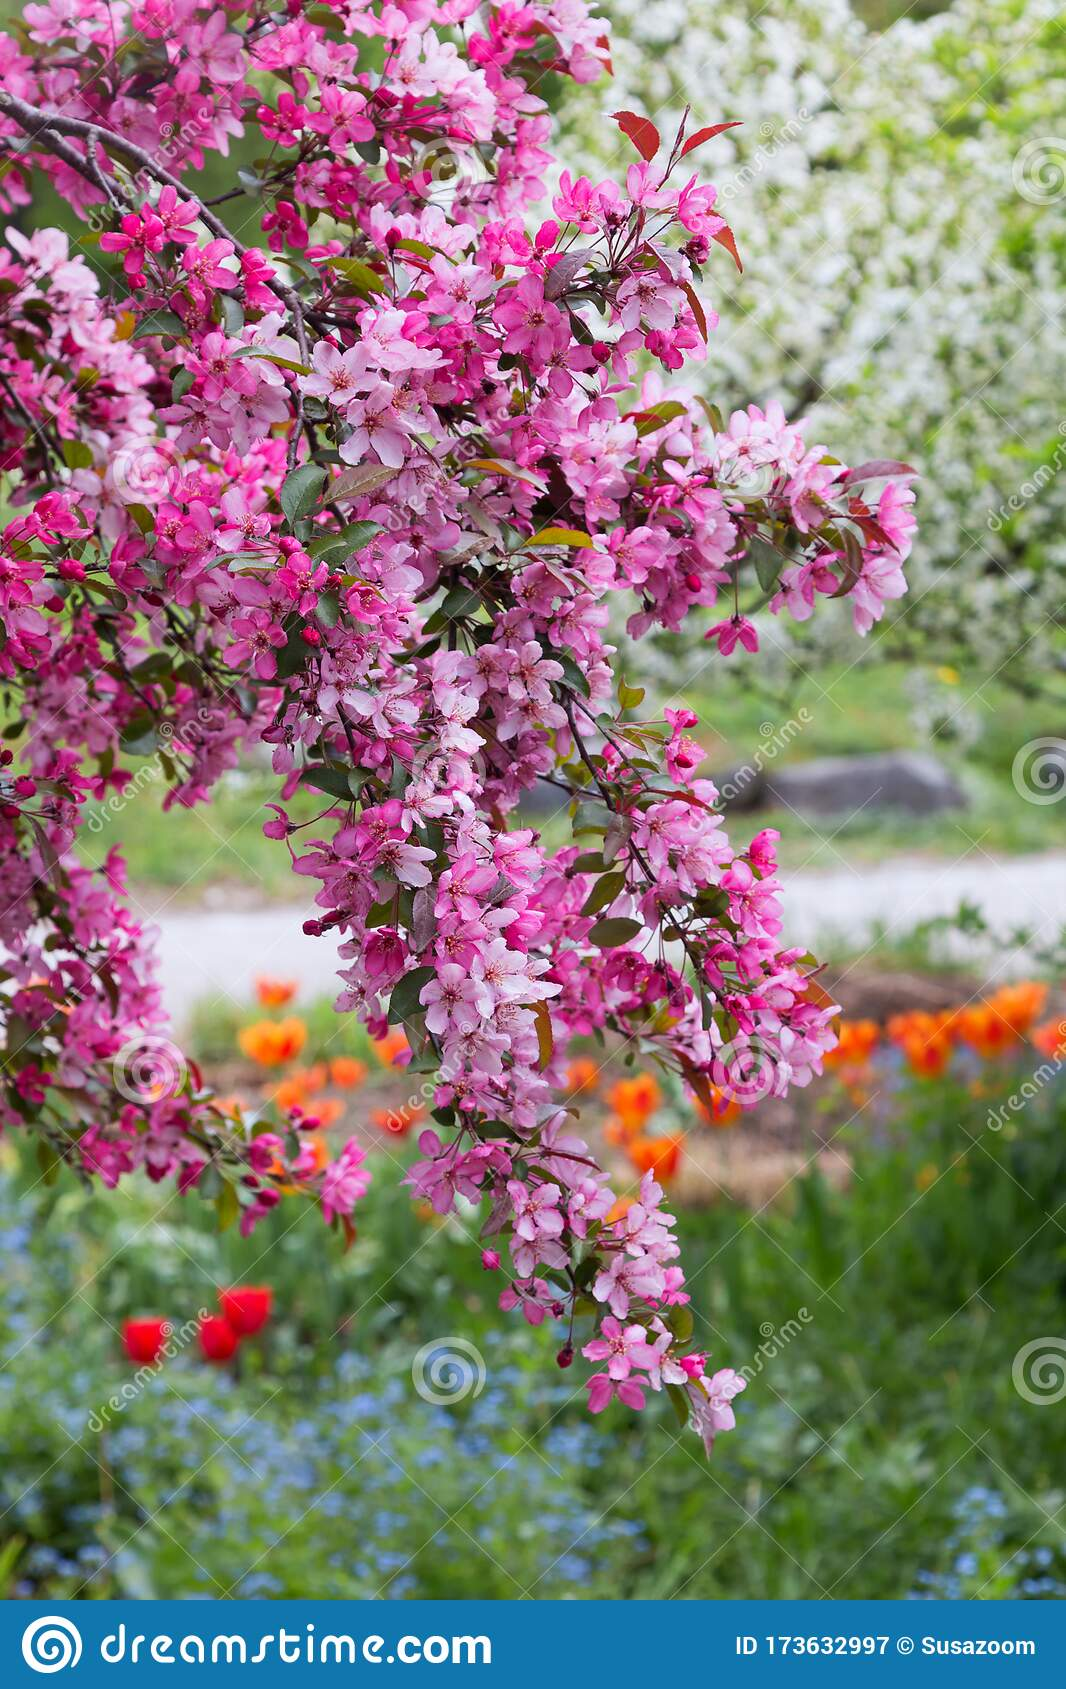 Blooming Crab Apple Branches With Pink Blossoms Spring Landscape